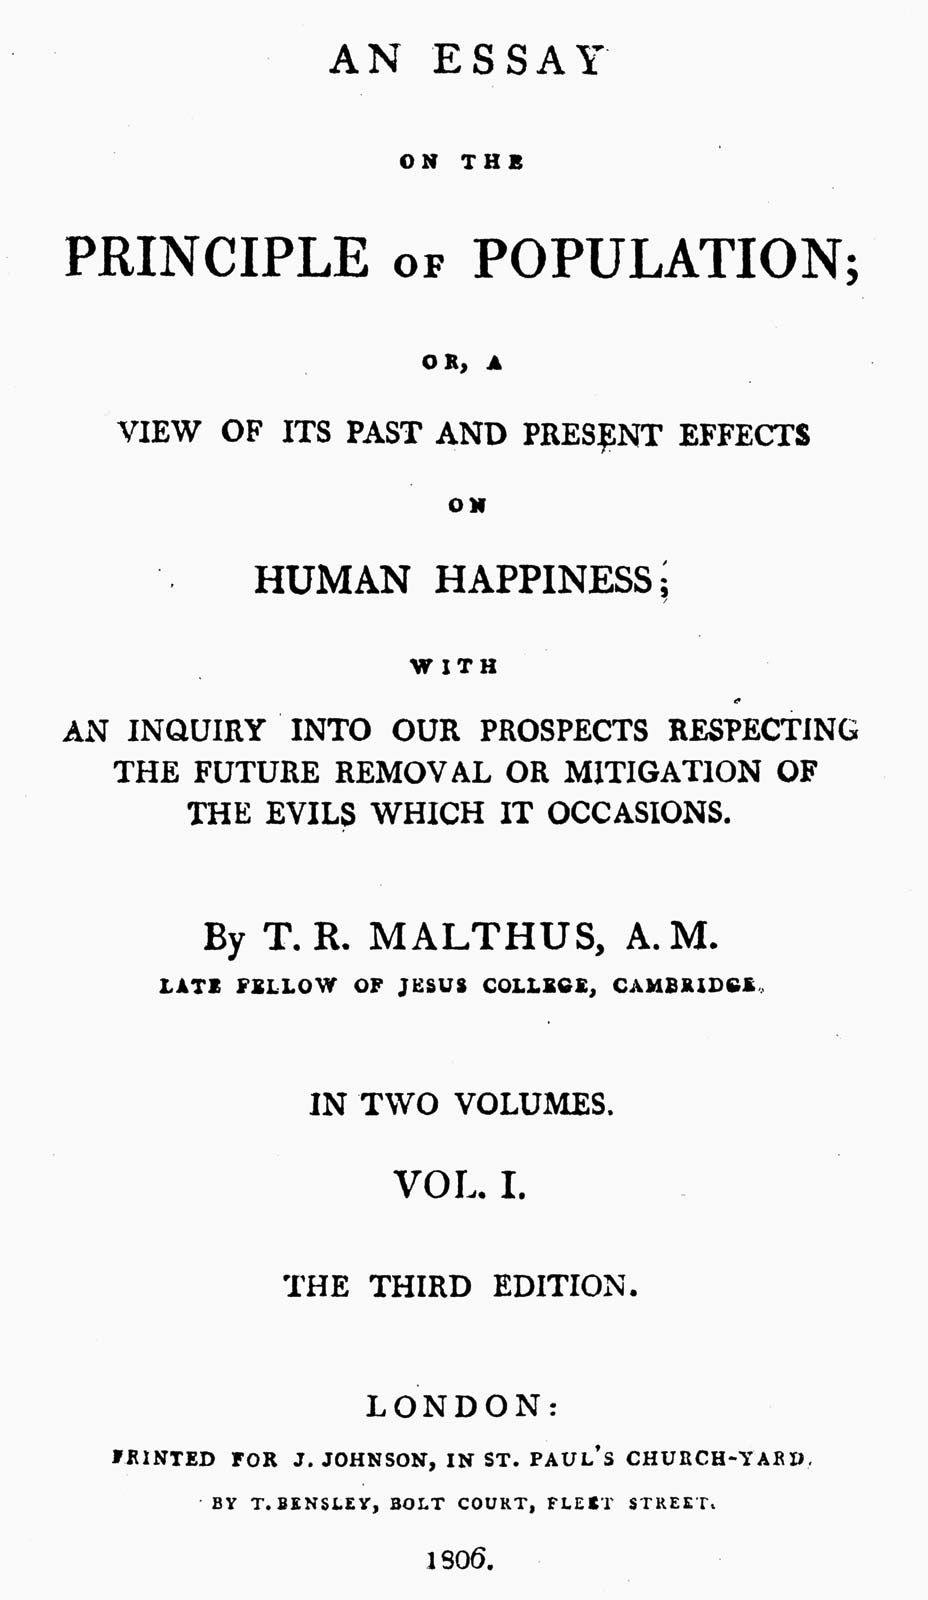 017 Thomas Malthus An Essay On The Principle Of Population Marvelous Summary Analysis Argued In His (1798) That Full